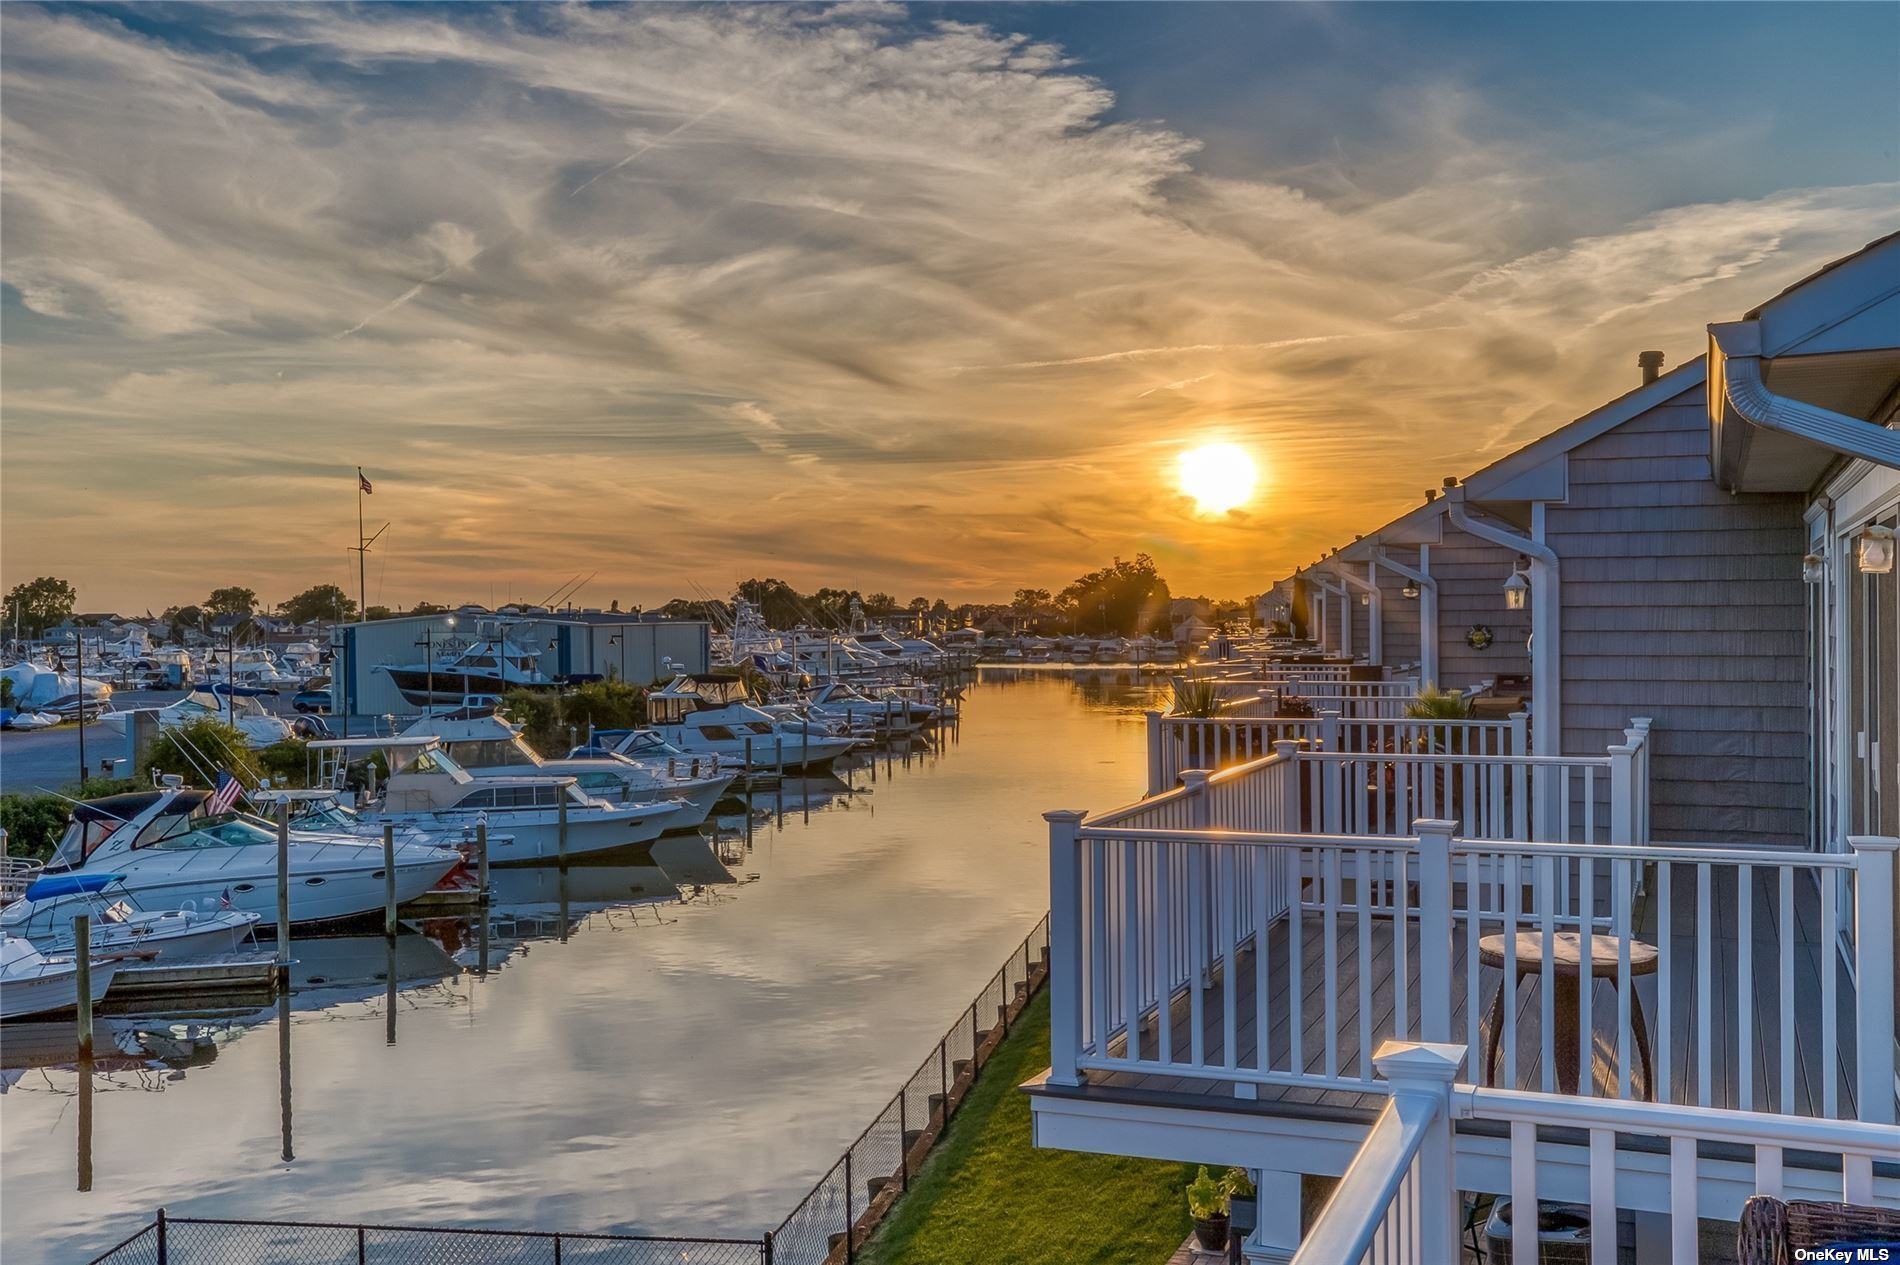 Built In 2017, This 3 Bedroom, 3 Bathroom Open Concept Corner Unit Waterfront Townhouse Was Built To Perfection!! Gleaming In Natural Light With Gorgeous Sunsets, This Townhouse Has Beautiful Finishes Including Hardwood & Bluestone Floors, Granite Kitchen With Gas Stovetop, Stainless Steel Appliances, Designer Bathrooms, Private Waterfront Trex Deck & Brick Patio, Gas Fireplace & Custom Millwork Throughout!! Private En-Suite Bedroom With Custom Closets & Large Full Bathroom Including Dual Sink Granite Vanity, Soaker Tub & Shower With Glass Doors! Additional Features Include Laundry Room, 1 Car Garage & Private Deep Water Boat Slip On Wide Canal, Minutes To The Jones Inlet, Fire Island, Fishing, Shopping & Dining!!!